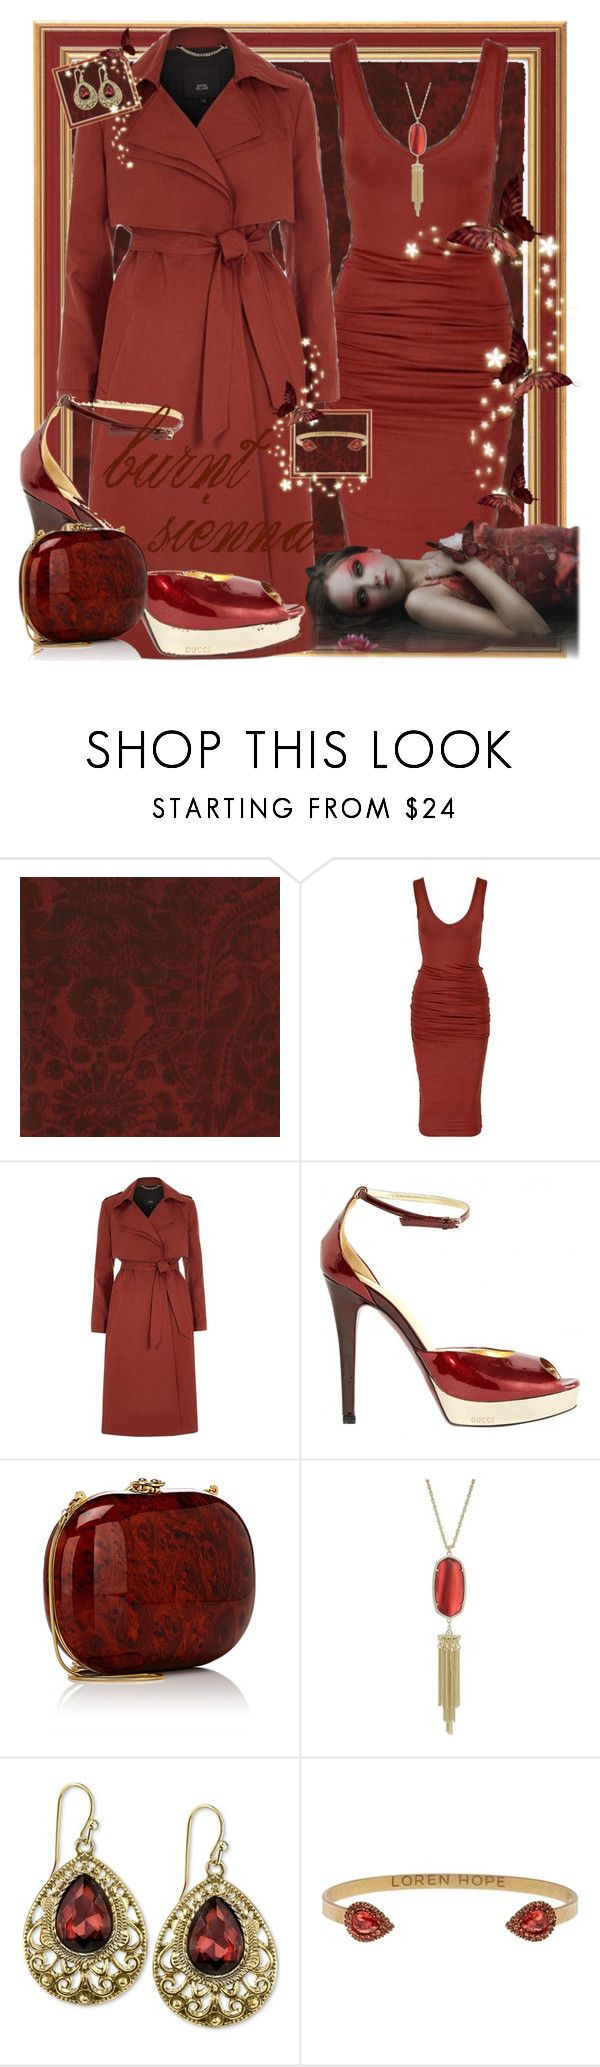 """burnt sienna"" by traceyenorton ❤ liked on Polyvore featuring Andrew Martin, River Island, Gucci, Jeffrey Levinson, Kendra Scott, 2028 and Loren Hope"